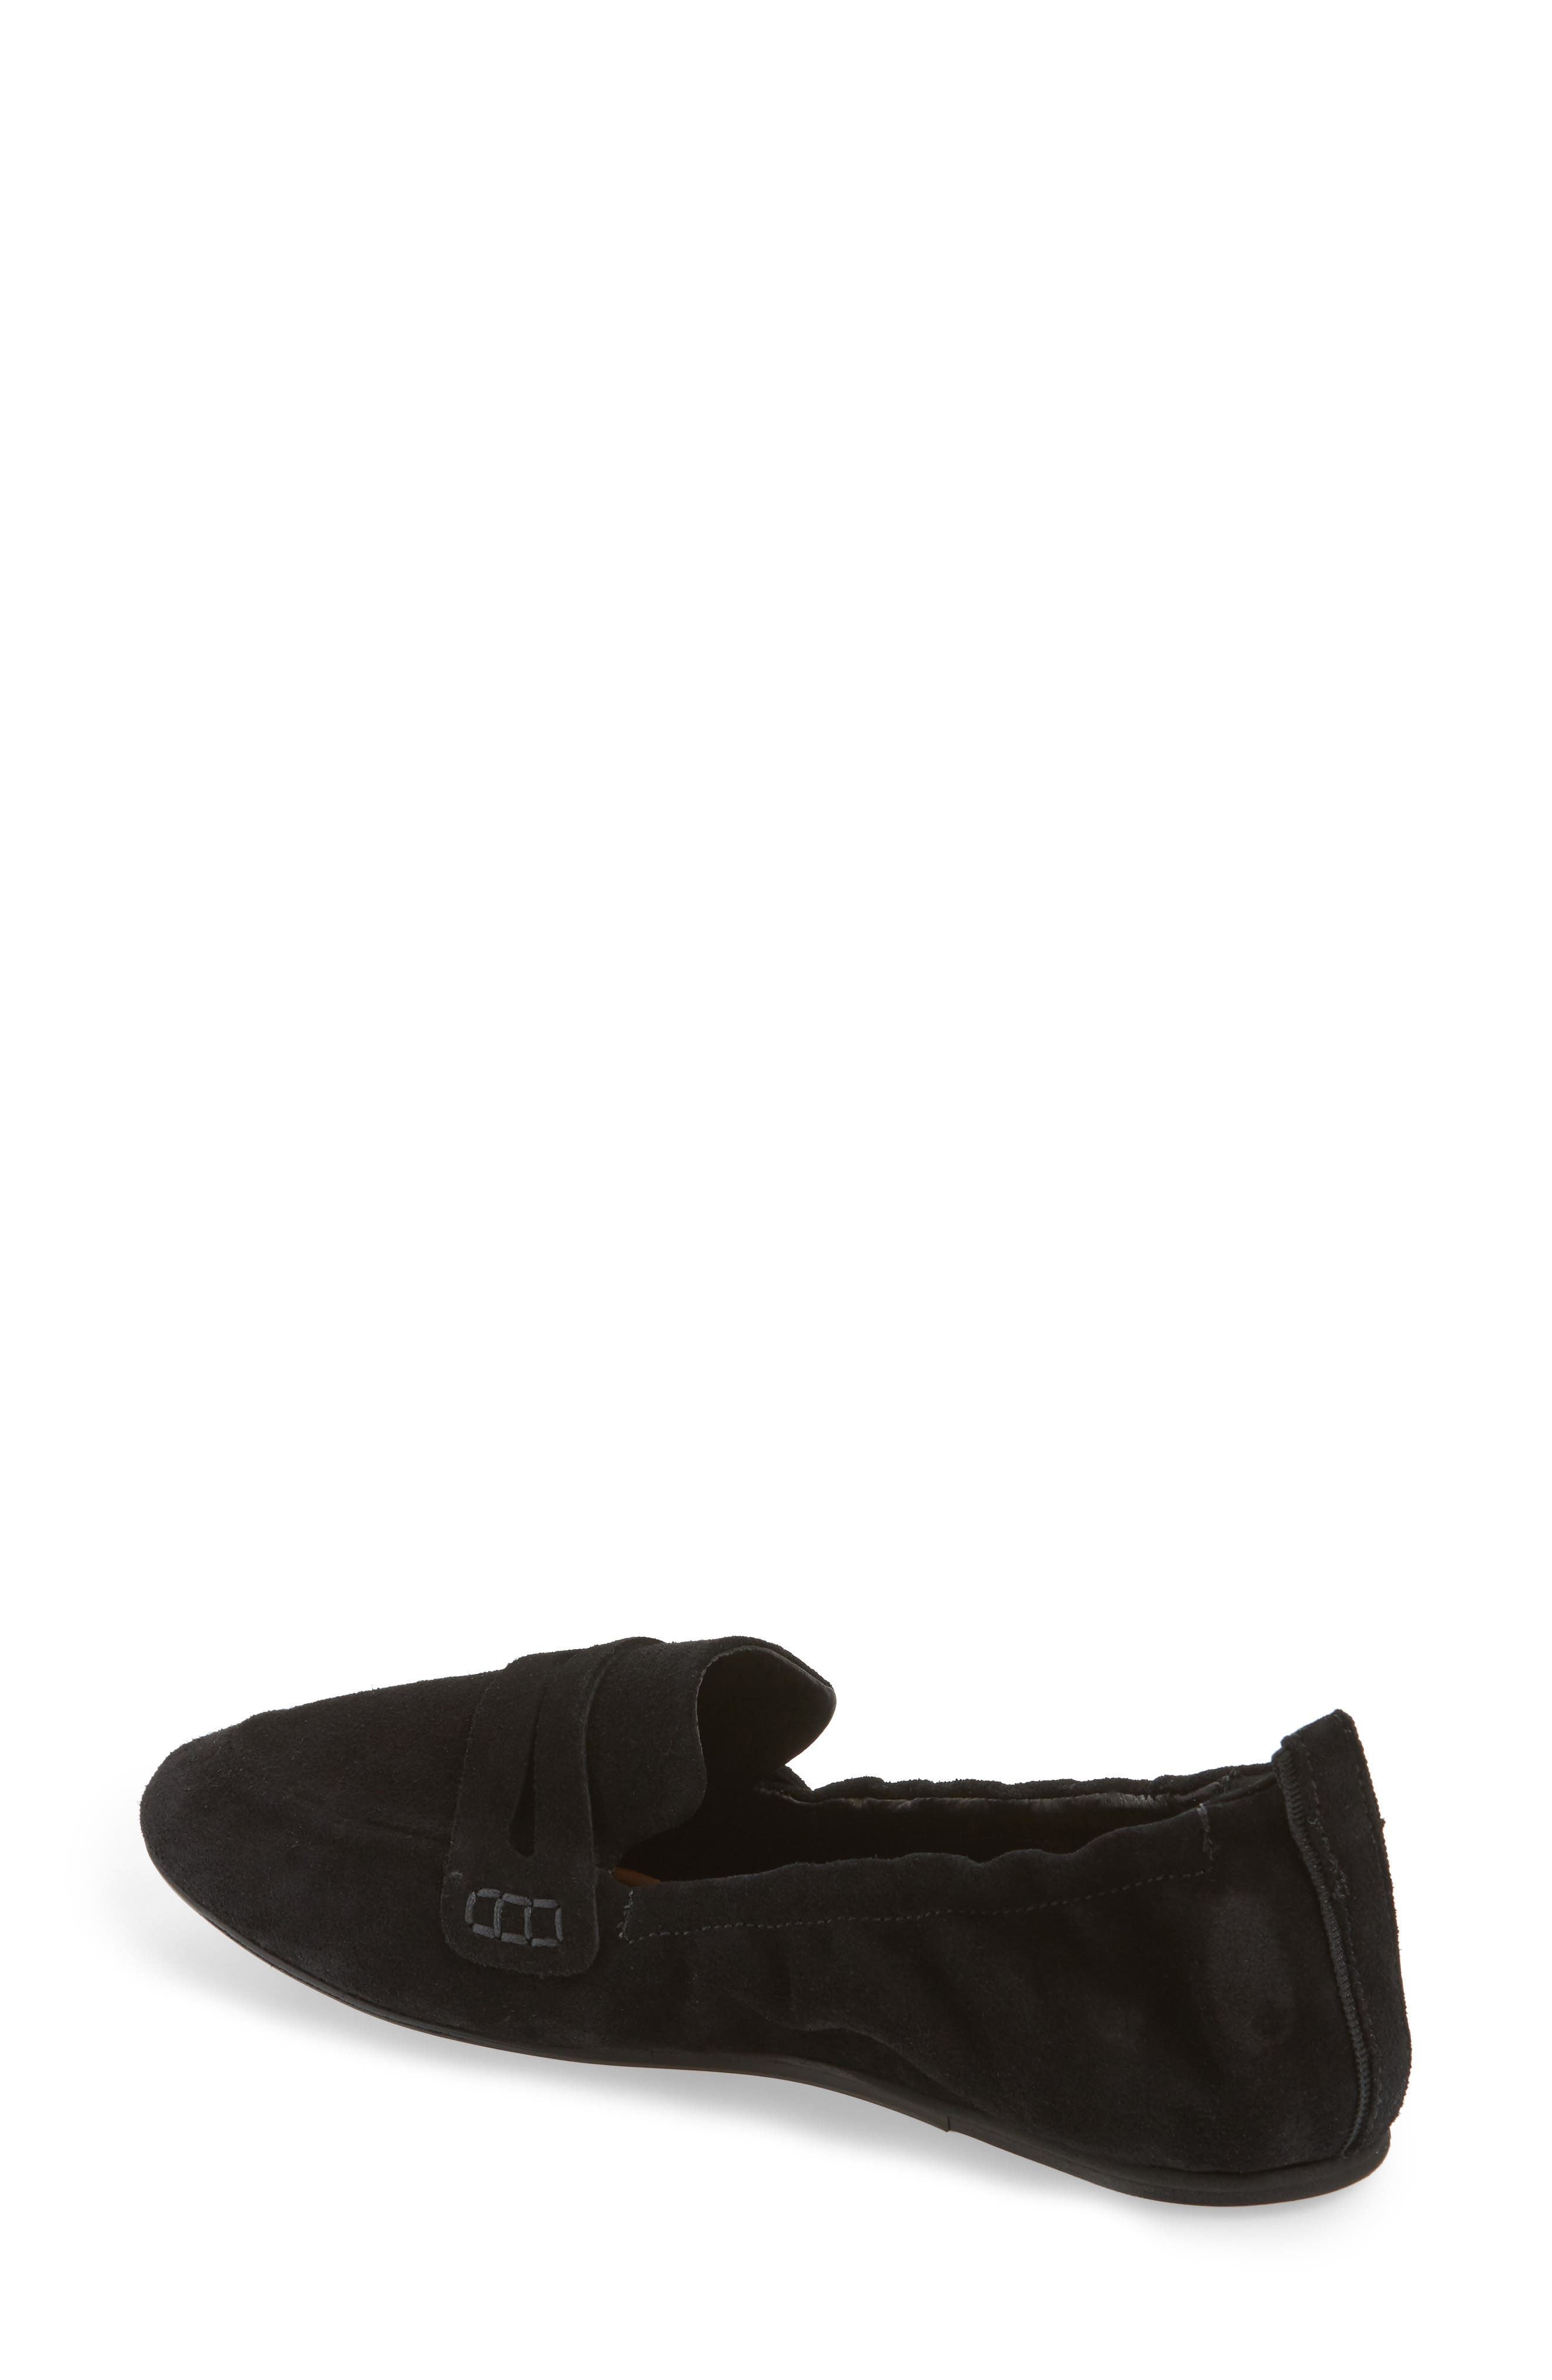 Milly Elastic Loafer Flat,                             Alternate thumbnail 2, color,                             Black Suede